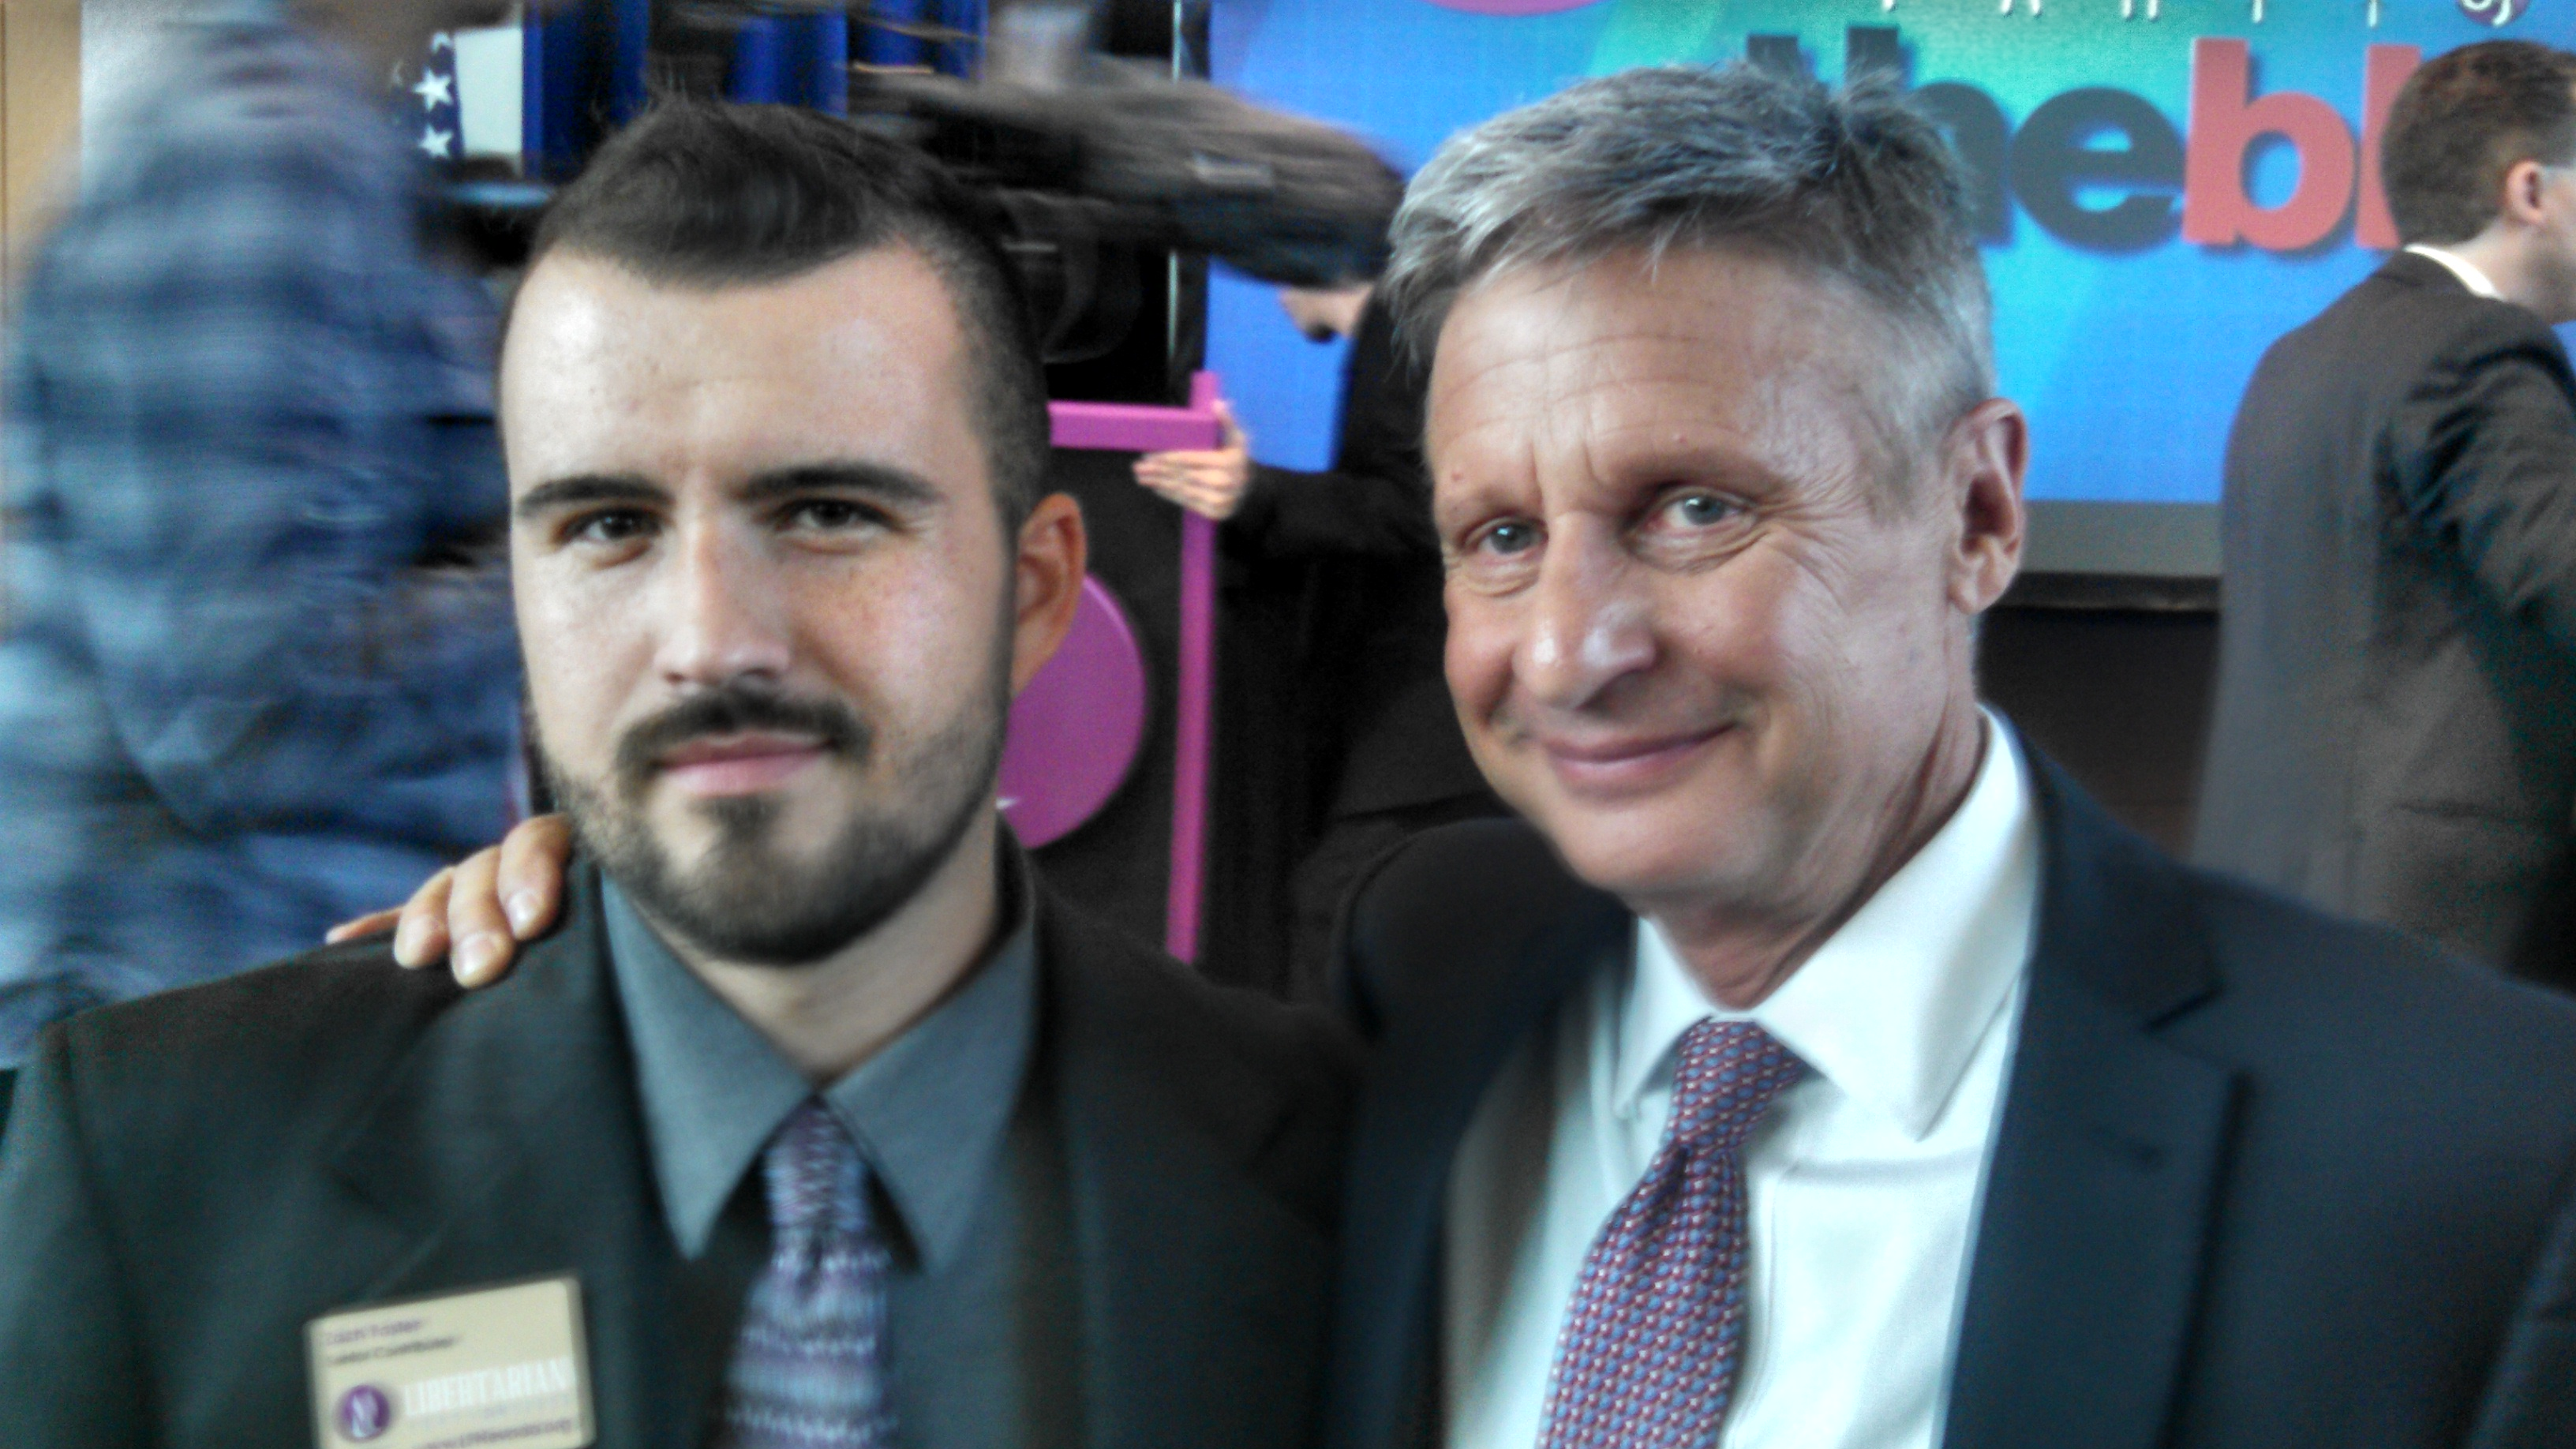 LP Nevada Senior Contributor Zach Foster with Governor Gary Johnson. Photo by Zach Foster.